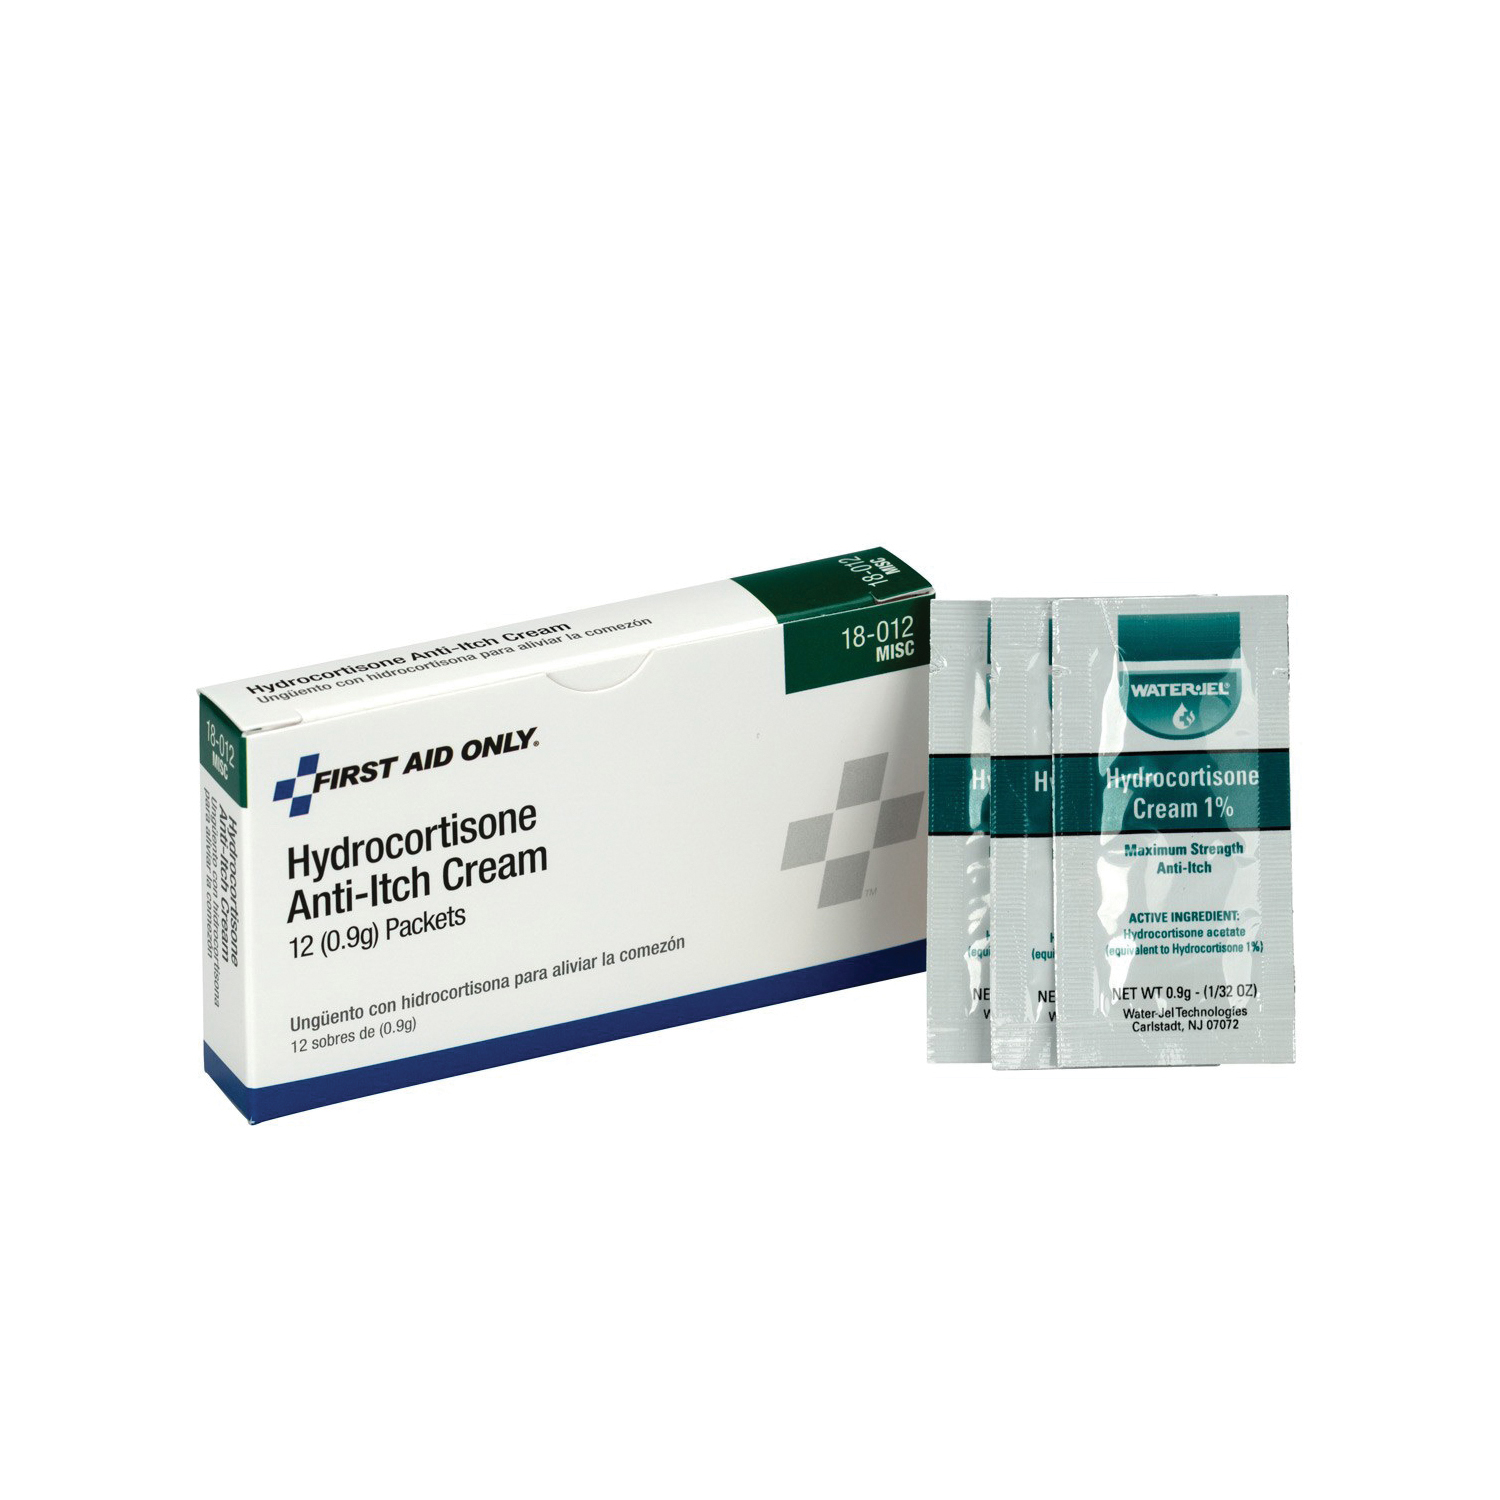 First Aid Only®18-012